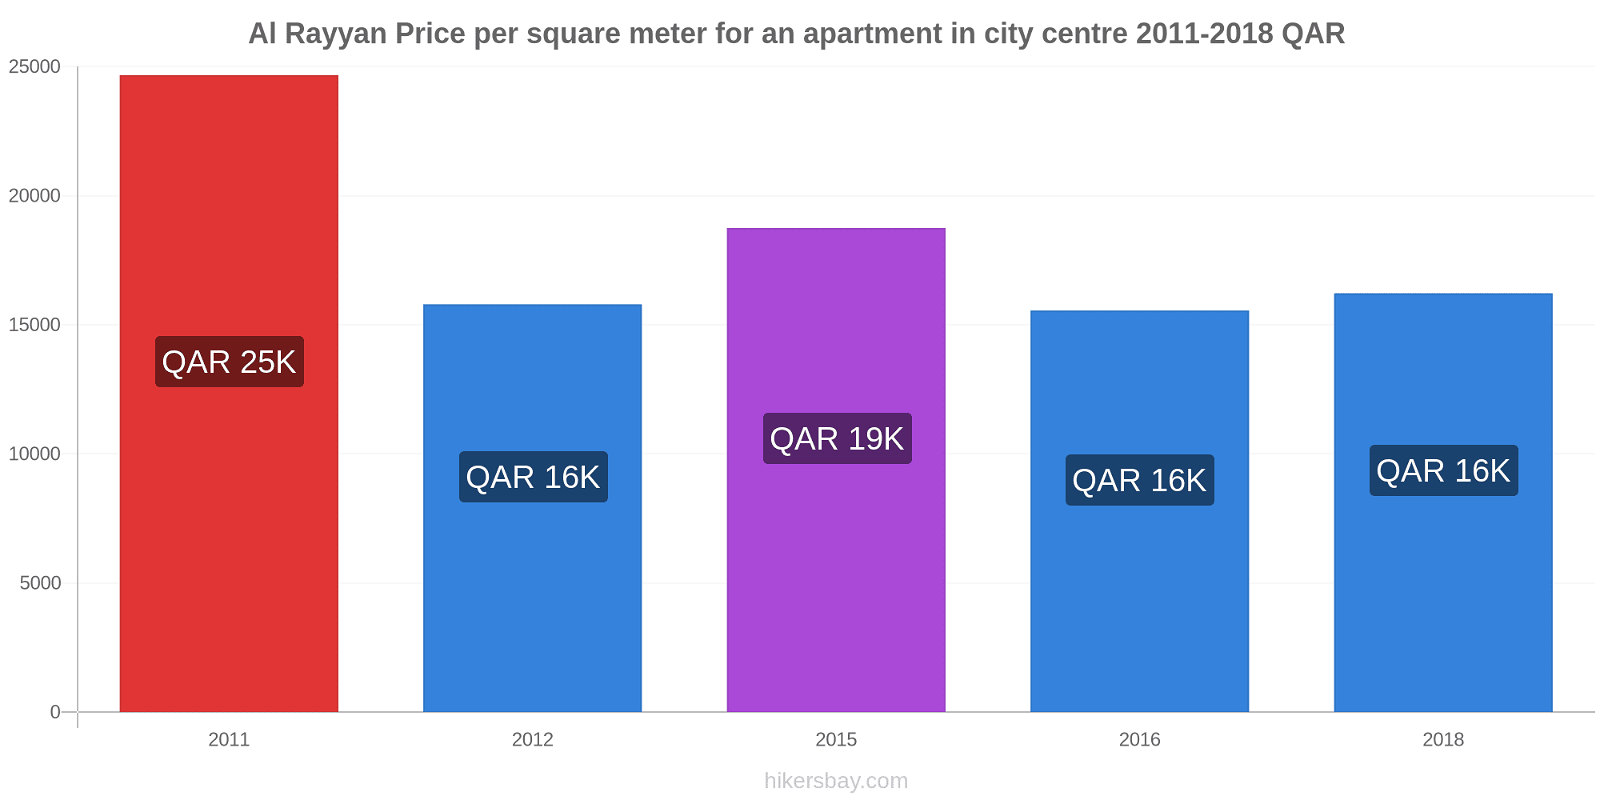 Al Rayyan price changes Price per square meter for an apartment in city centre hikersbay.com